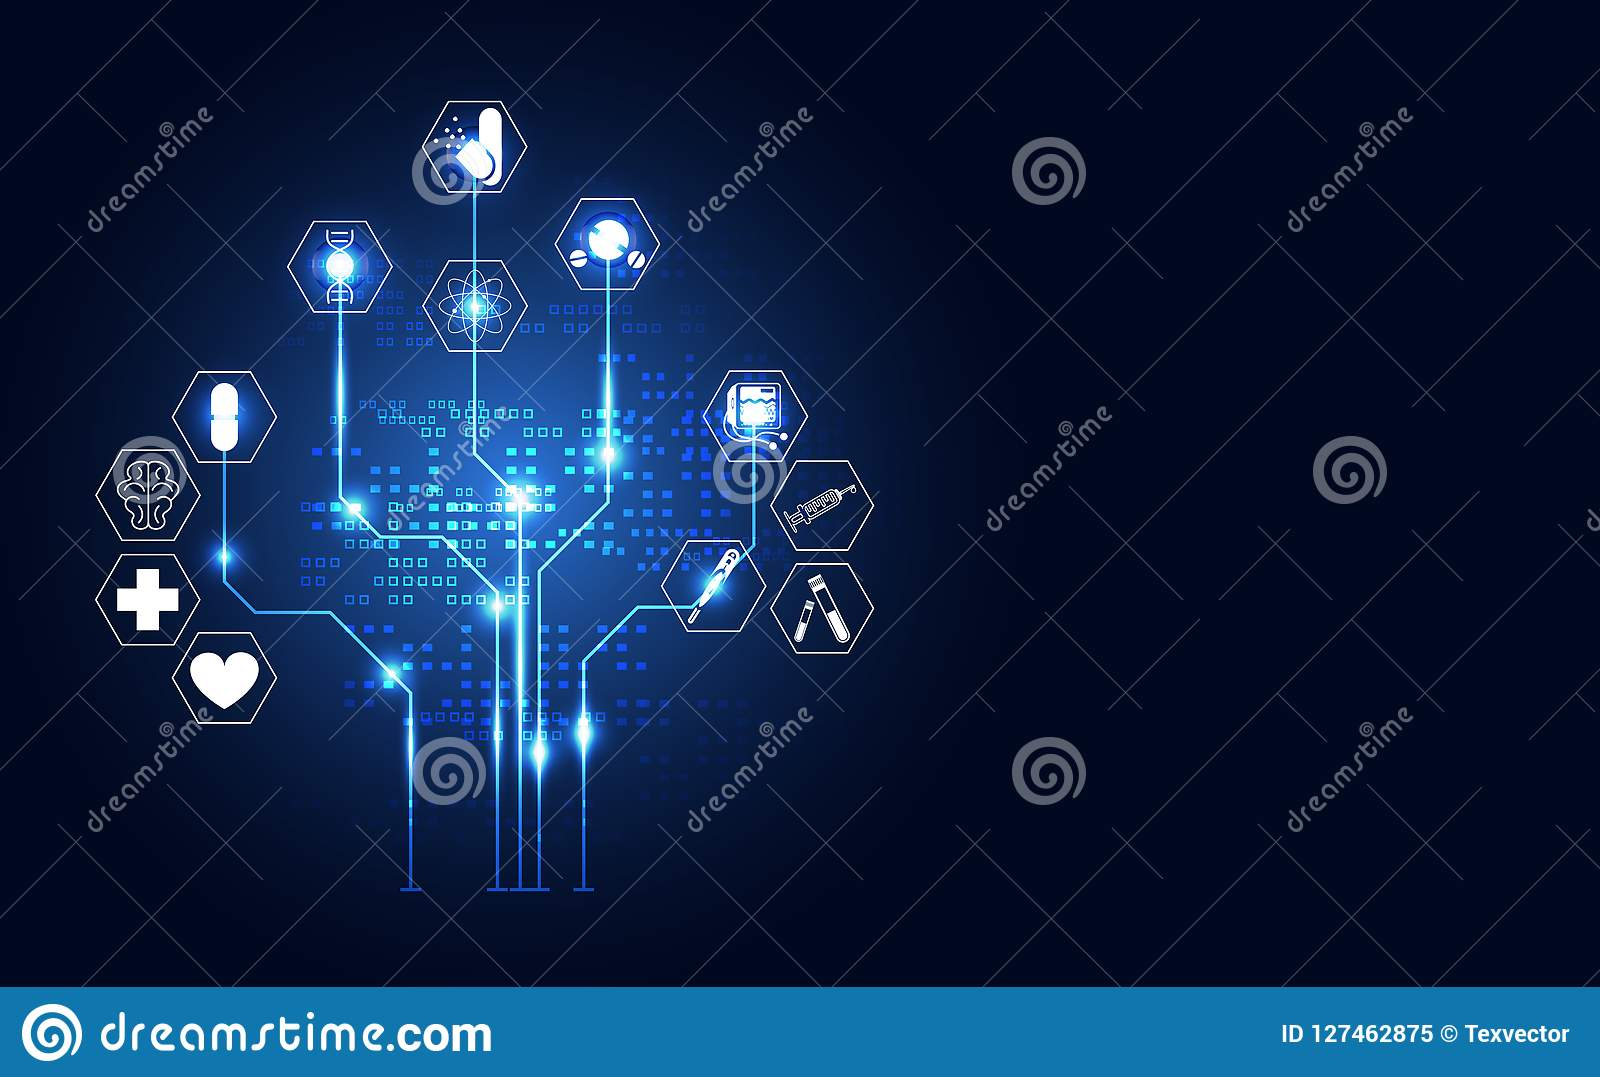 Abstract technology digital health medical concept icon digital